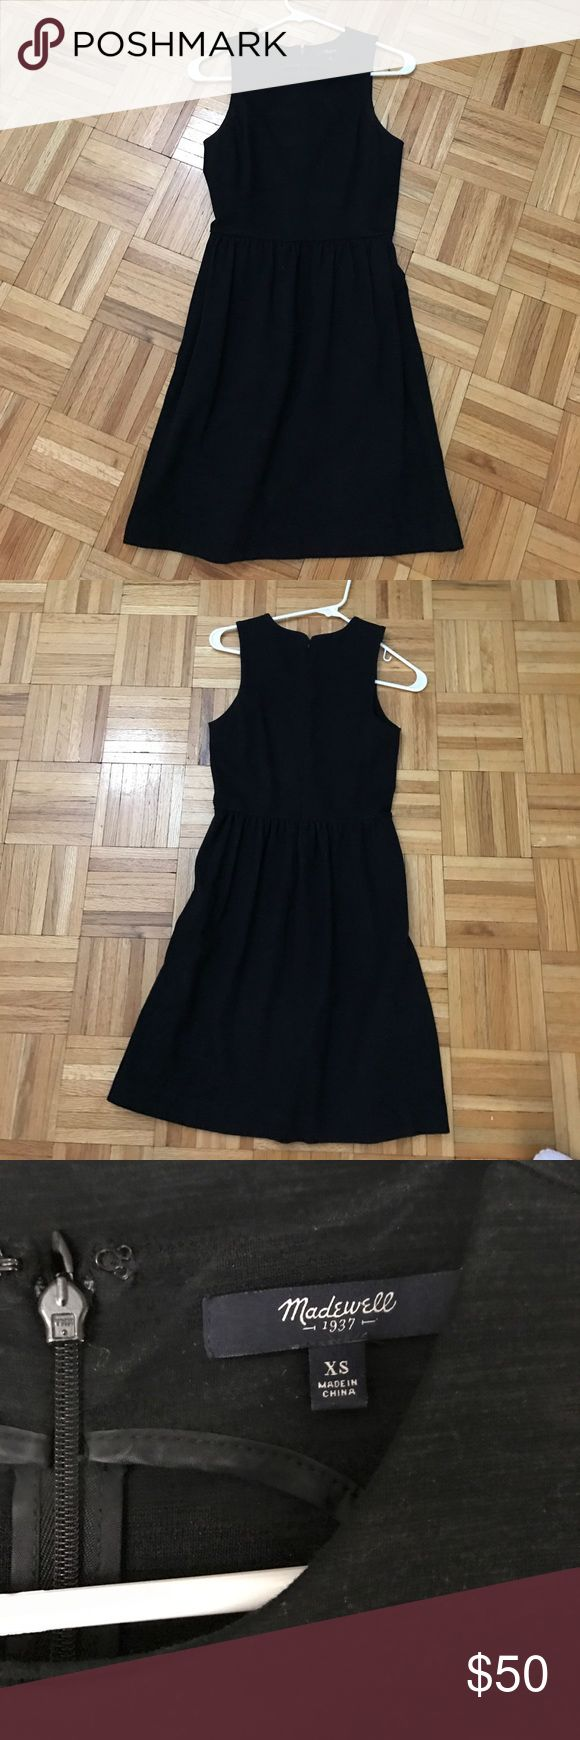 Madewell Black Afternoon Dress - NOTRADE Gently used, good condition, no defects Madewell Dresses